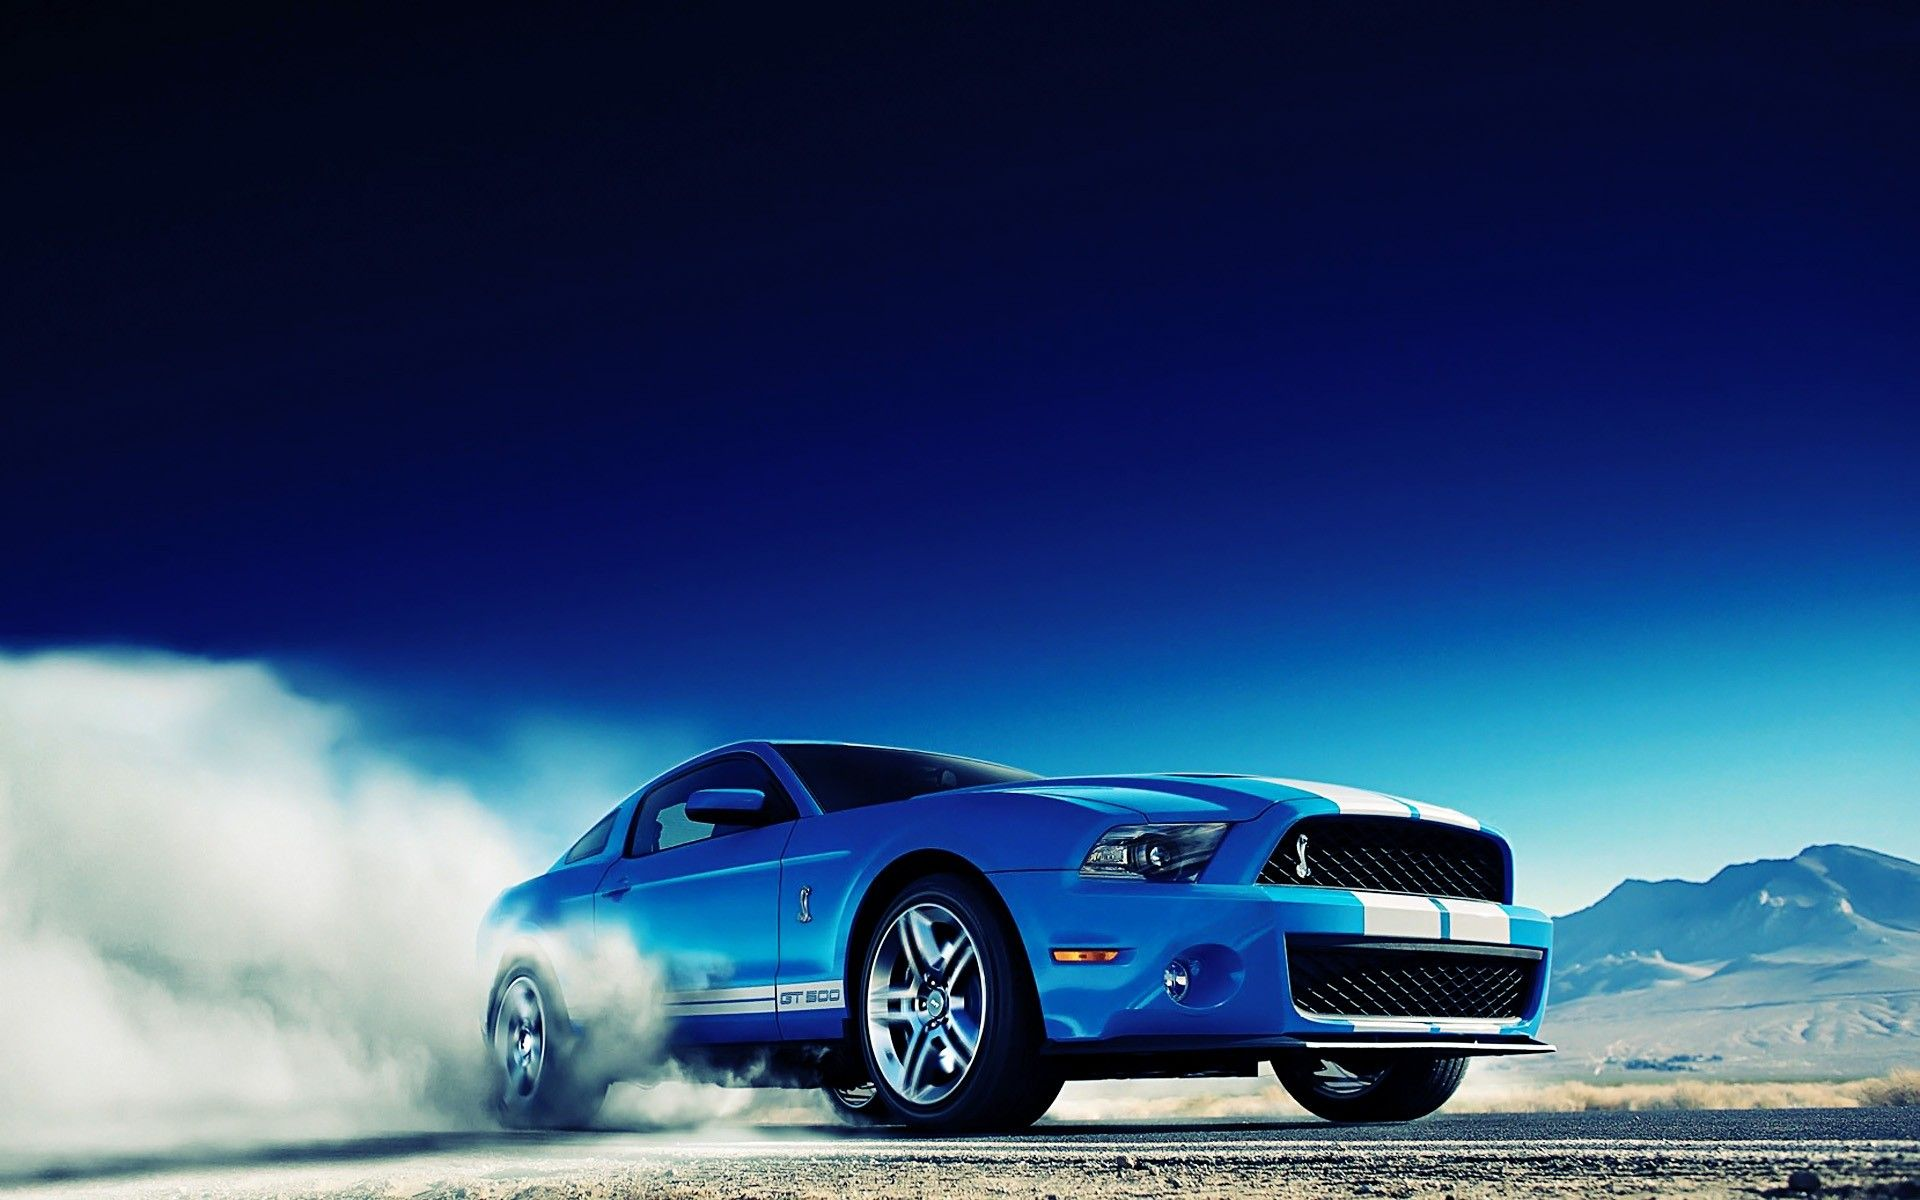 Mustang Shelby Gt500 Cobra Cool Sports Cars Car Wallpapers